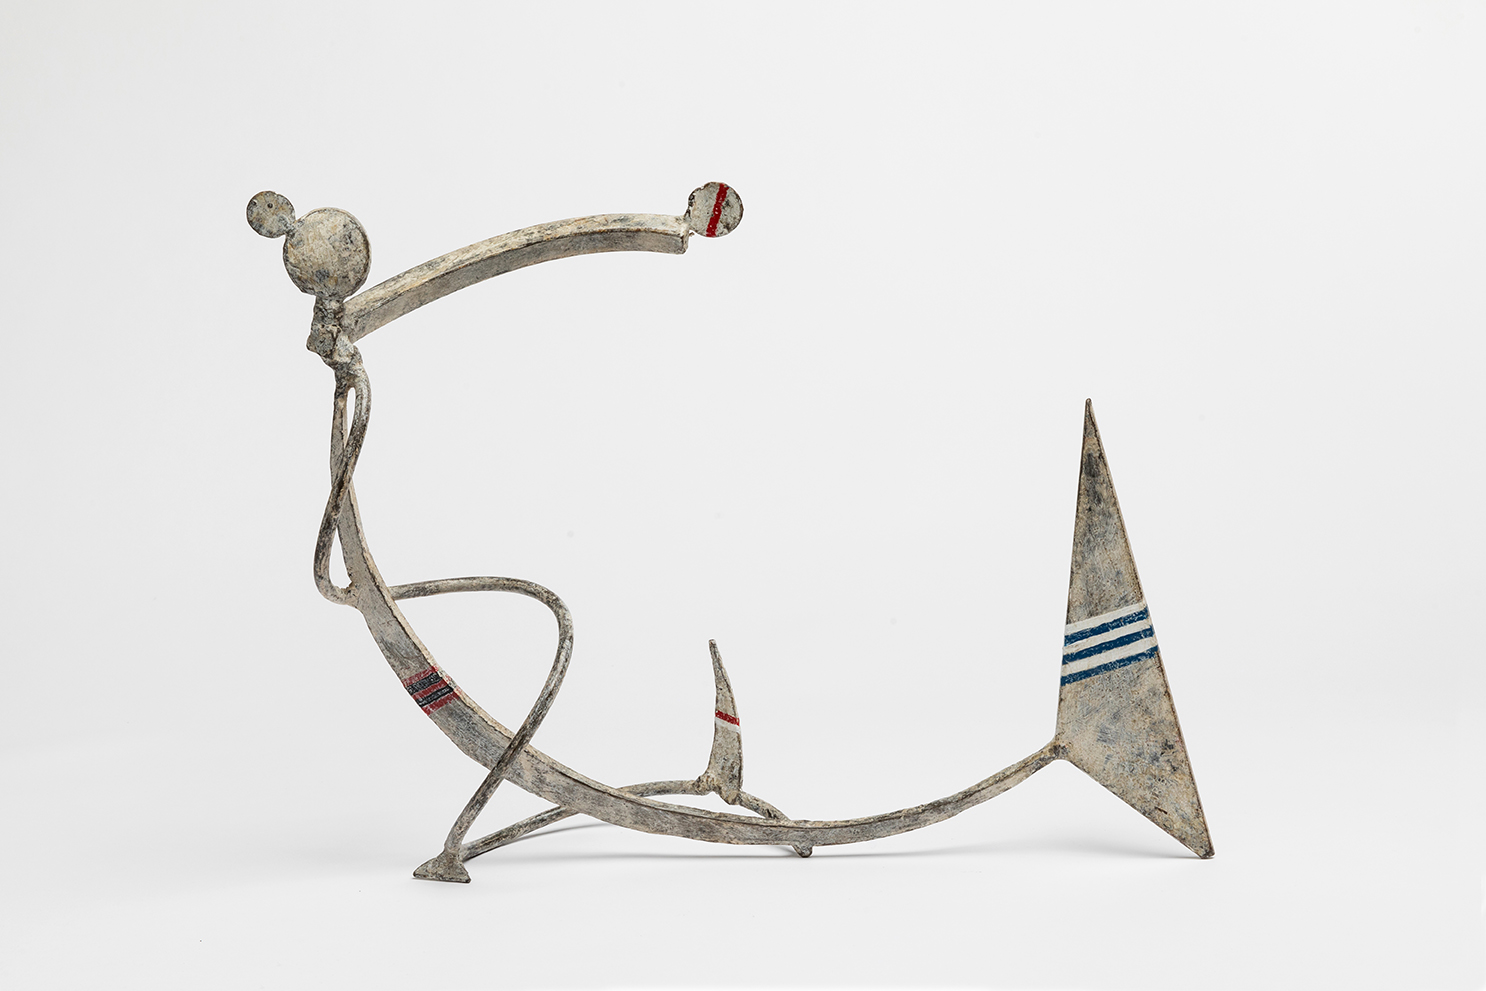 Lee Tribe,  Bather 13. Sails C Catch,  2016, steel, formed, welded, paint and wax, 12 x 15 x 5 ½""